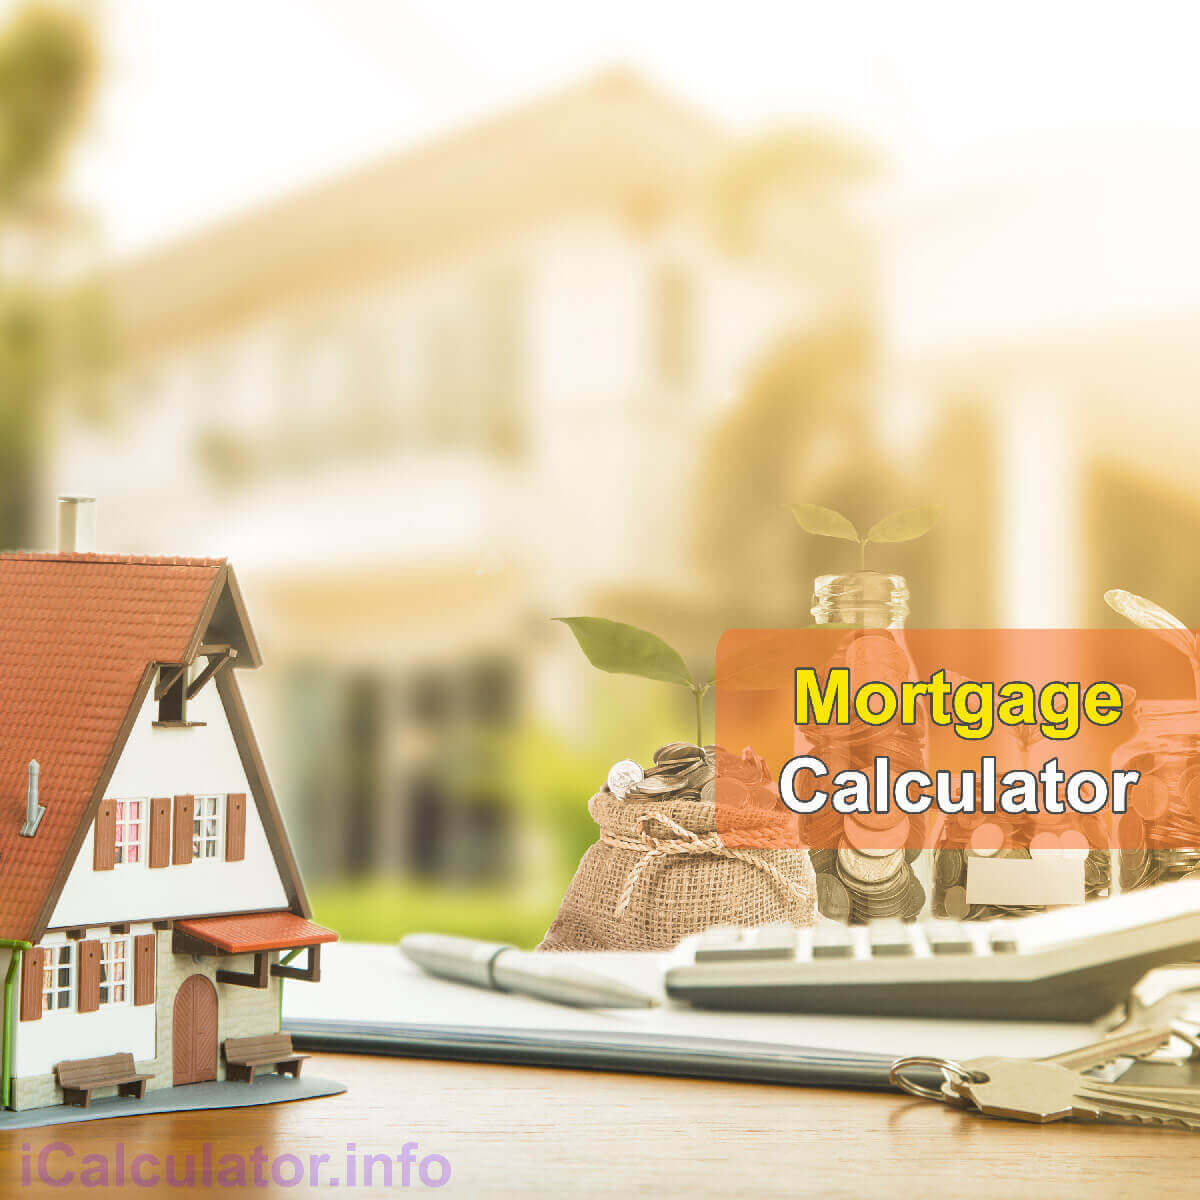 Mortgage Calculator. This image shows a beautiful home for a first time buyer, a notepad and a calculator being used to calculate the monthly repayment amount on a £6,000.00 mortgage with a 5.3% mortgage interest rate. Alternatively, people can calculate their monthly mortgage repayments on £6,000.00 at 5.3% using the mortgage calculator by iCalculator Finance Tax Calculator